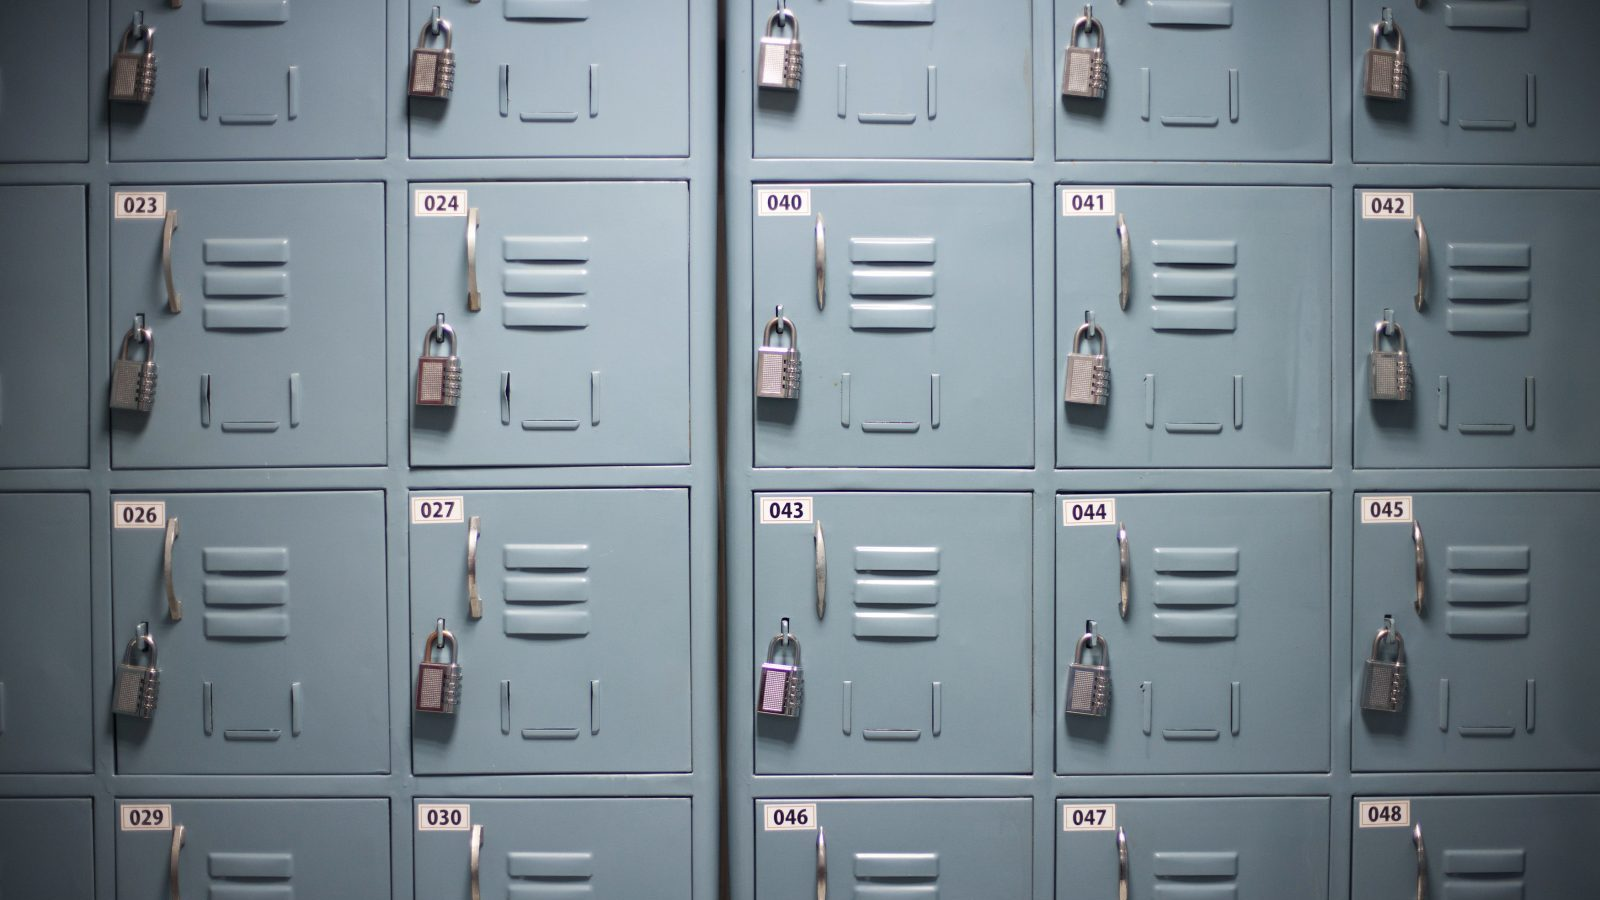 Lockers for workers to place their personal belongings into are seen on the floor of an outsourcing centre in Bangalore, February 29, 2012